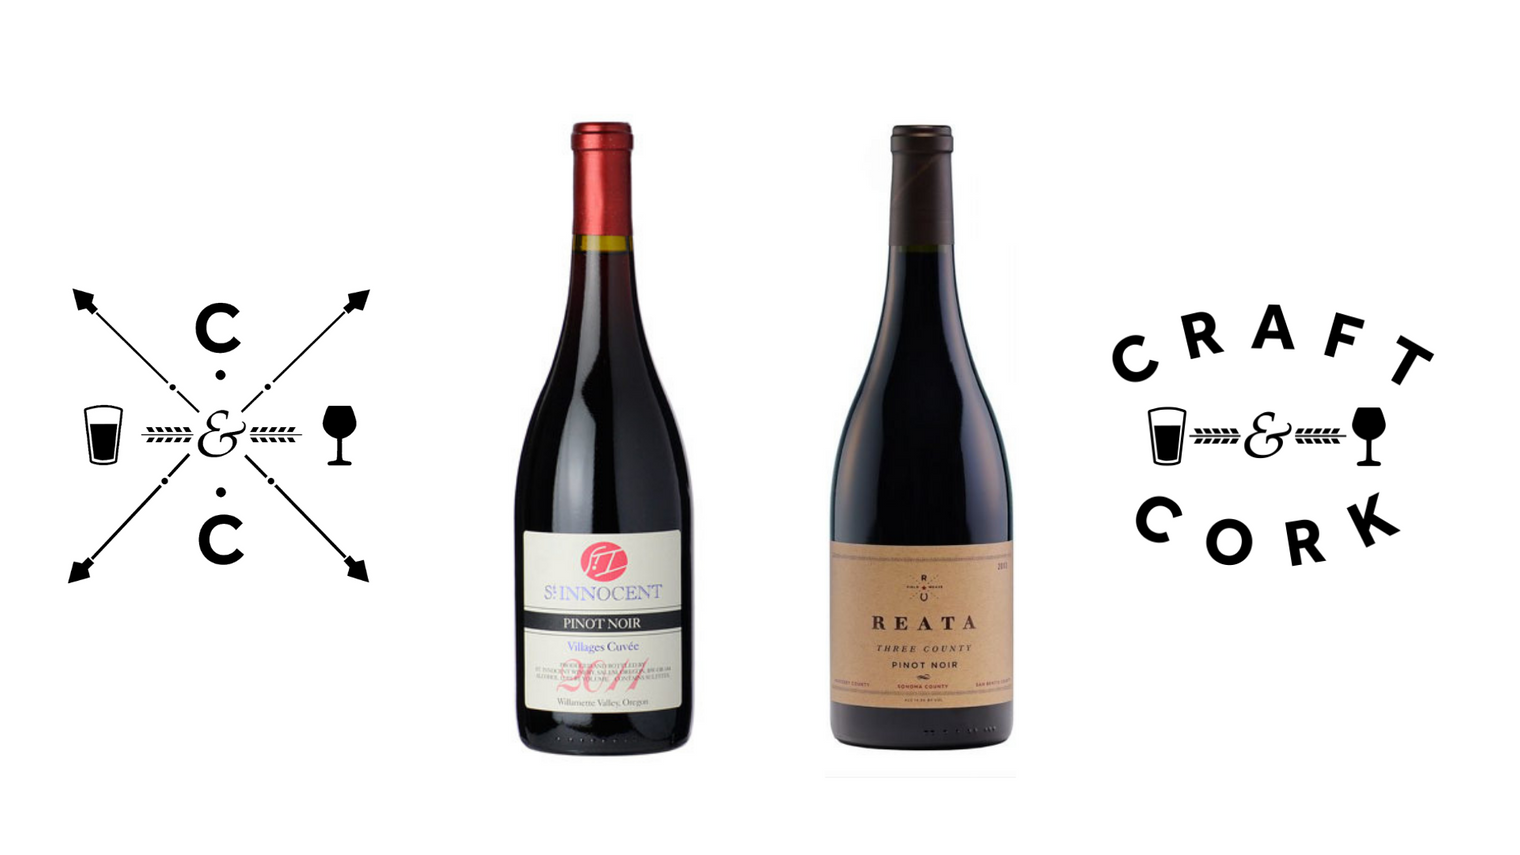 Craft & Cork adds 2 new wines